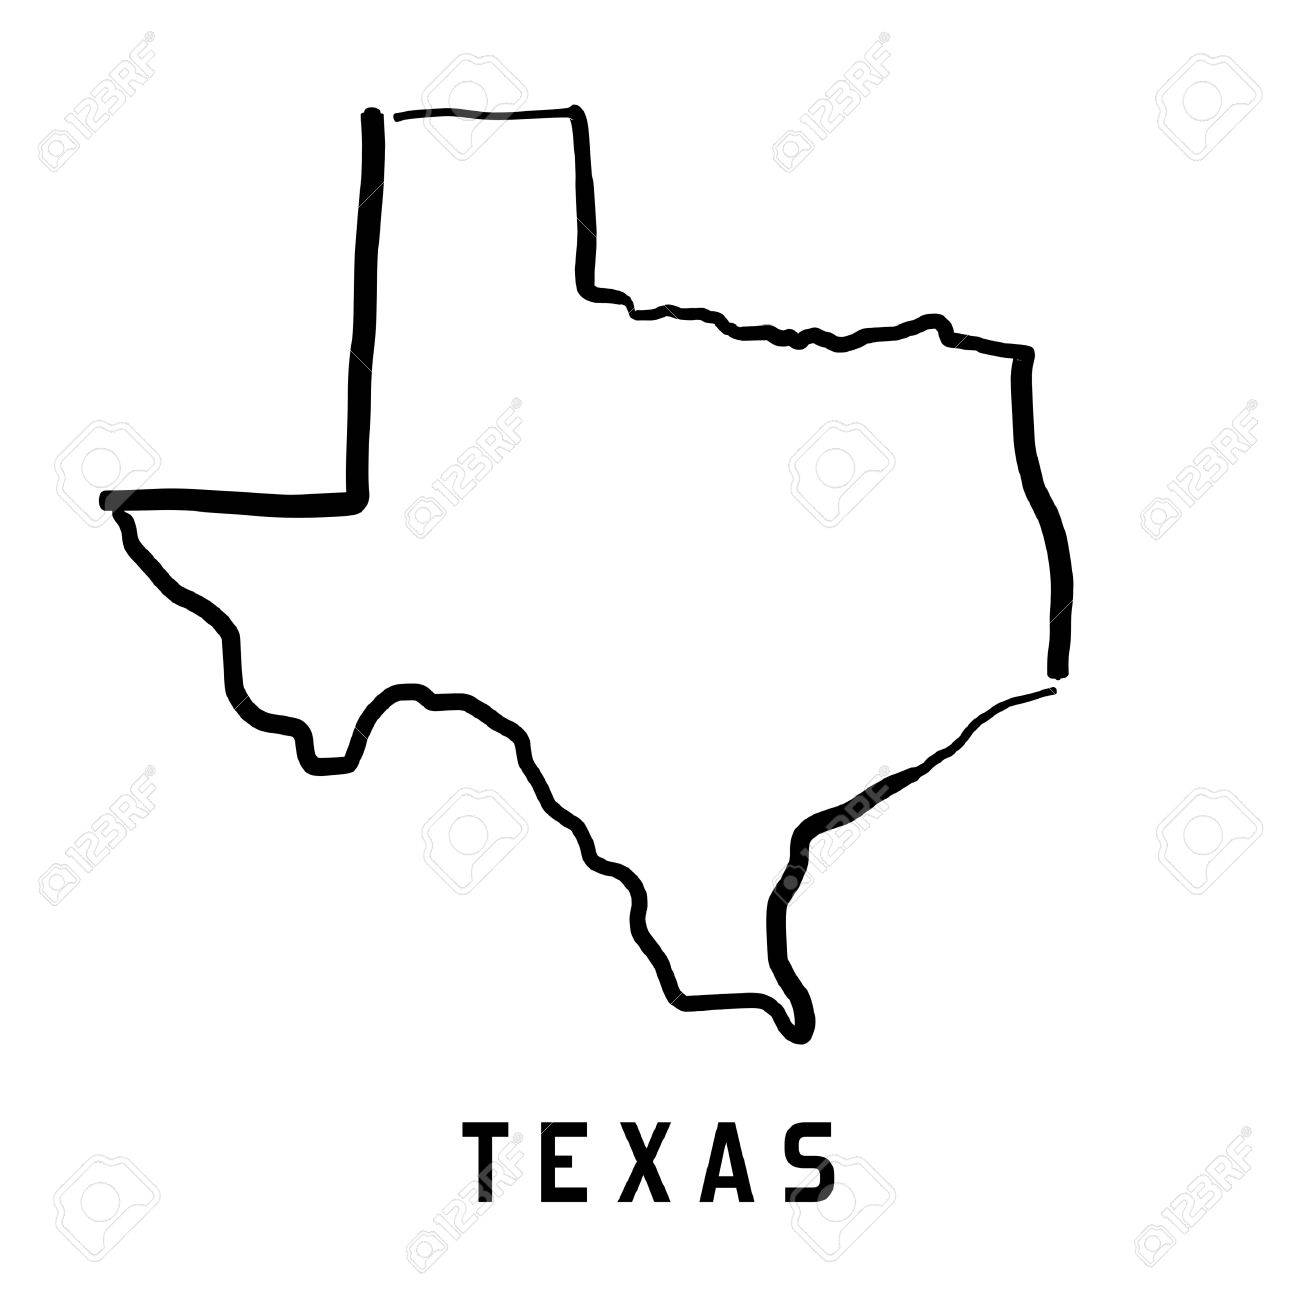 texas map outline smooth simplified us state shape map vector rh 123rf com texas state outline vector texas outline vector art